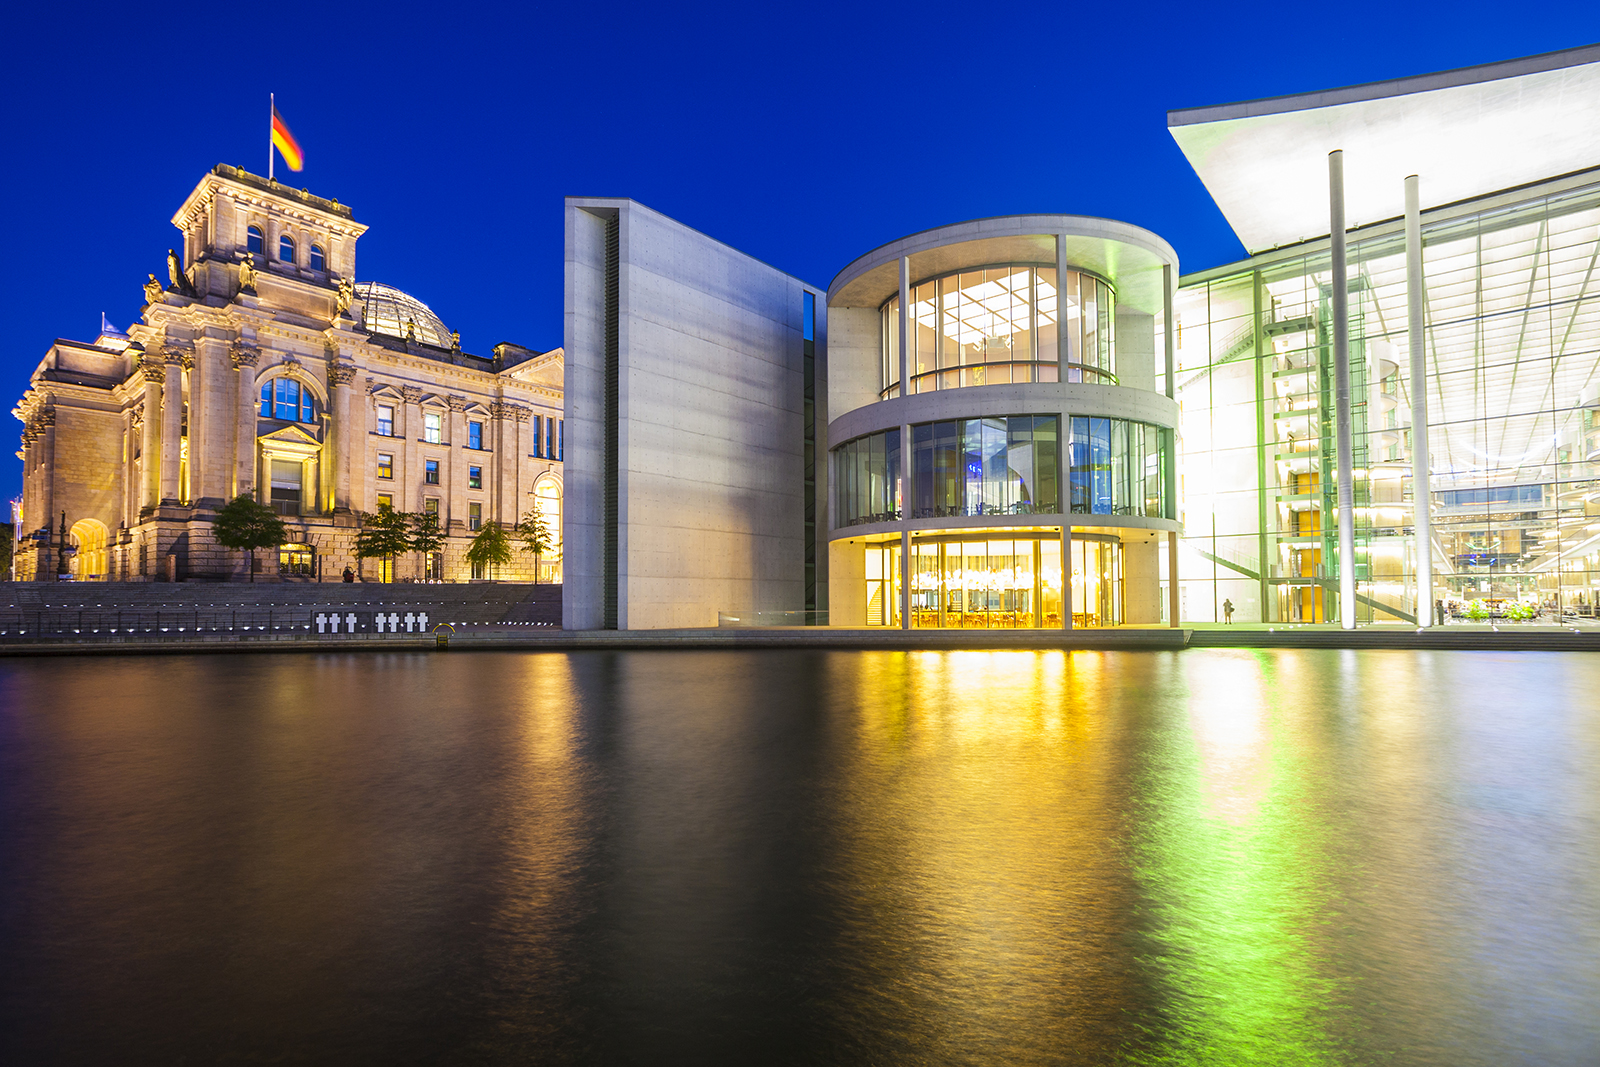 Berlin, Germany | Study Abroad | Academics | College of Law | DePaul